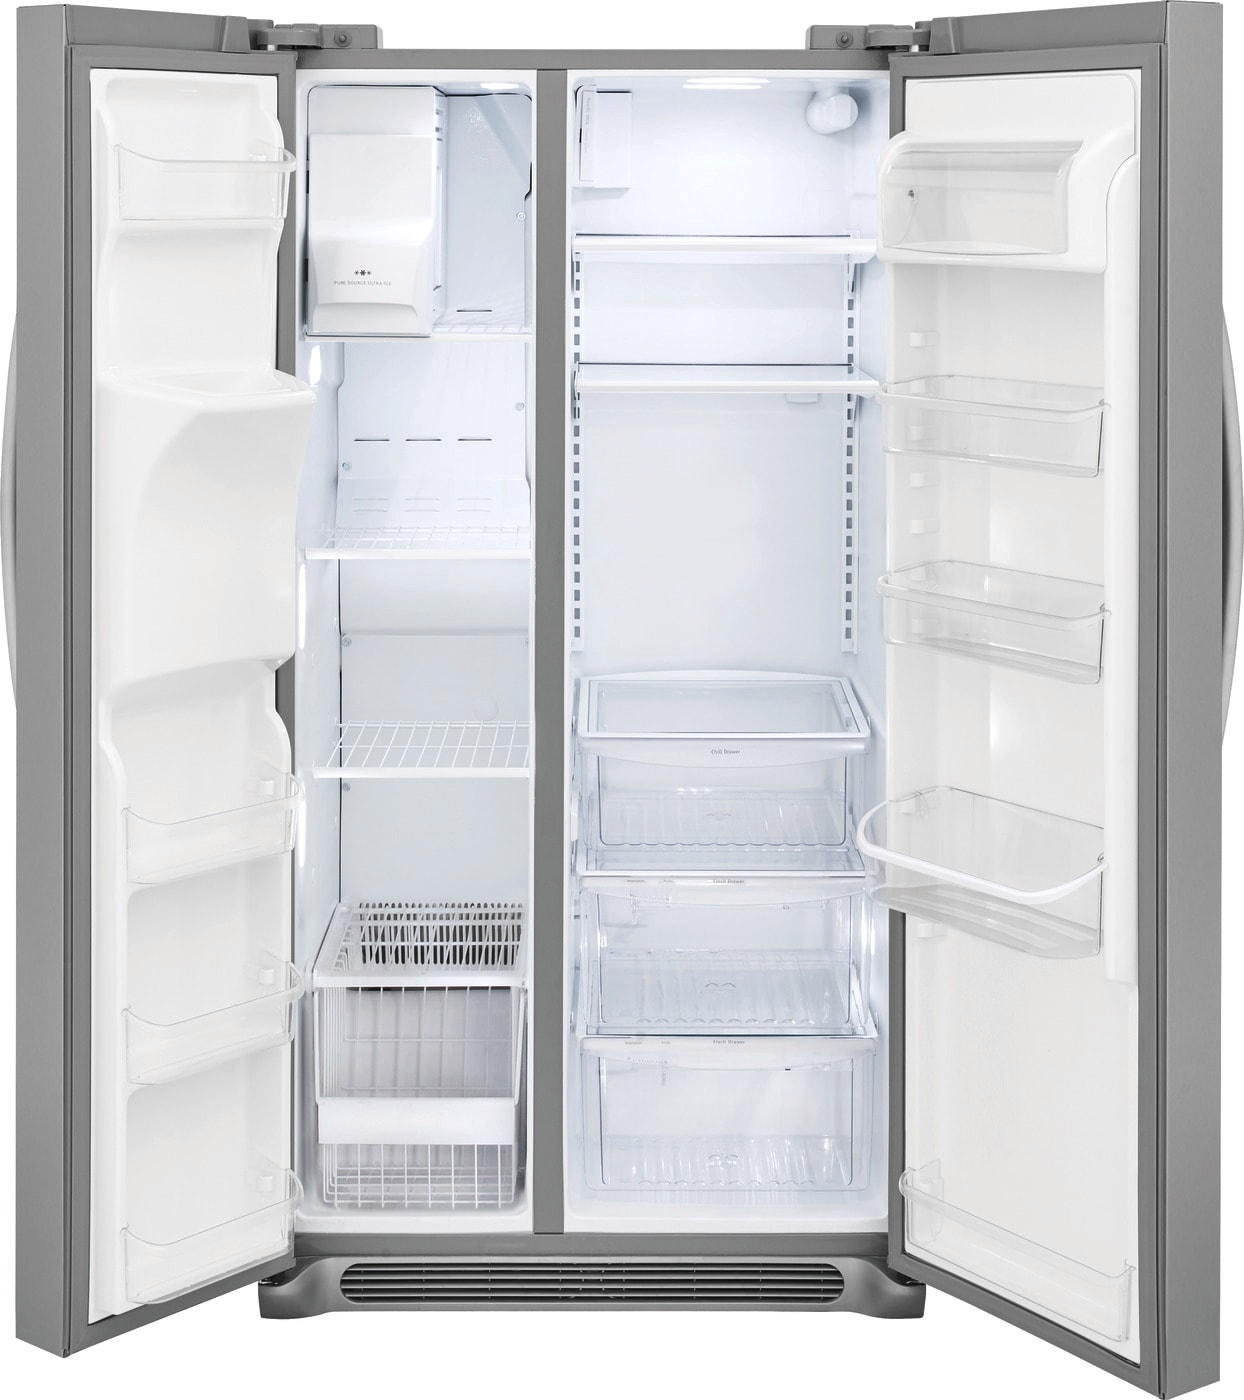 22.0 Cu. Ft. Counter-Depth Side-by-Side Refrigerator Stainless Steel FFSC2323TS